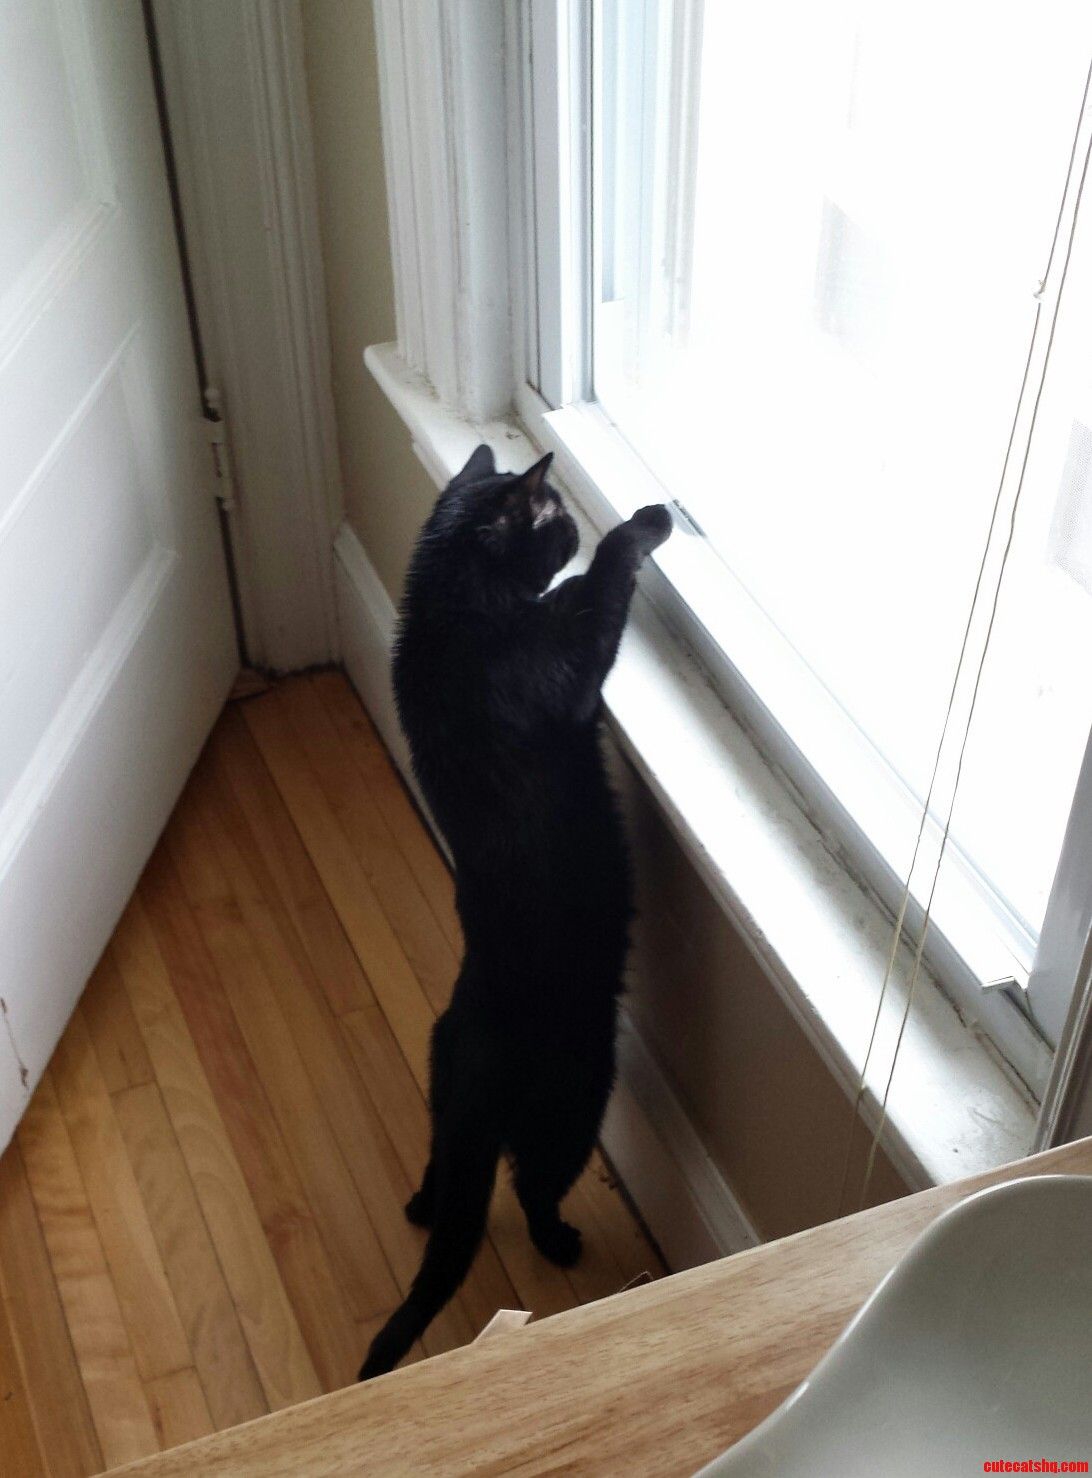 She Was Trying To Get The Snow On The Window